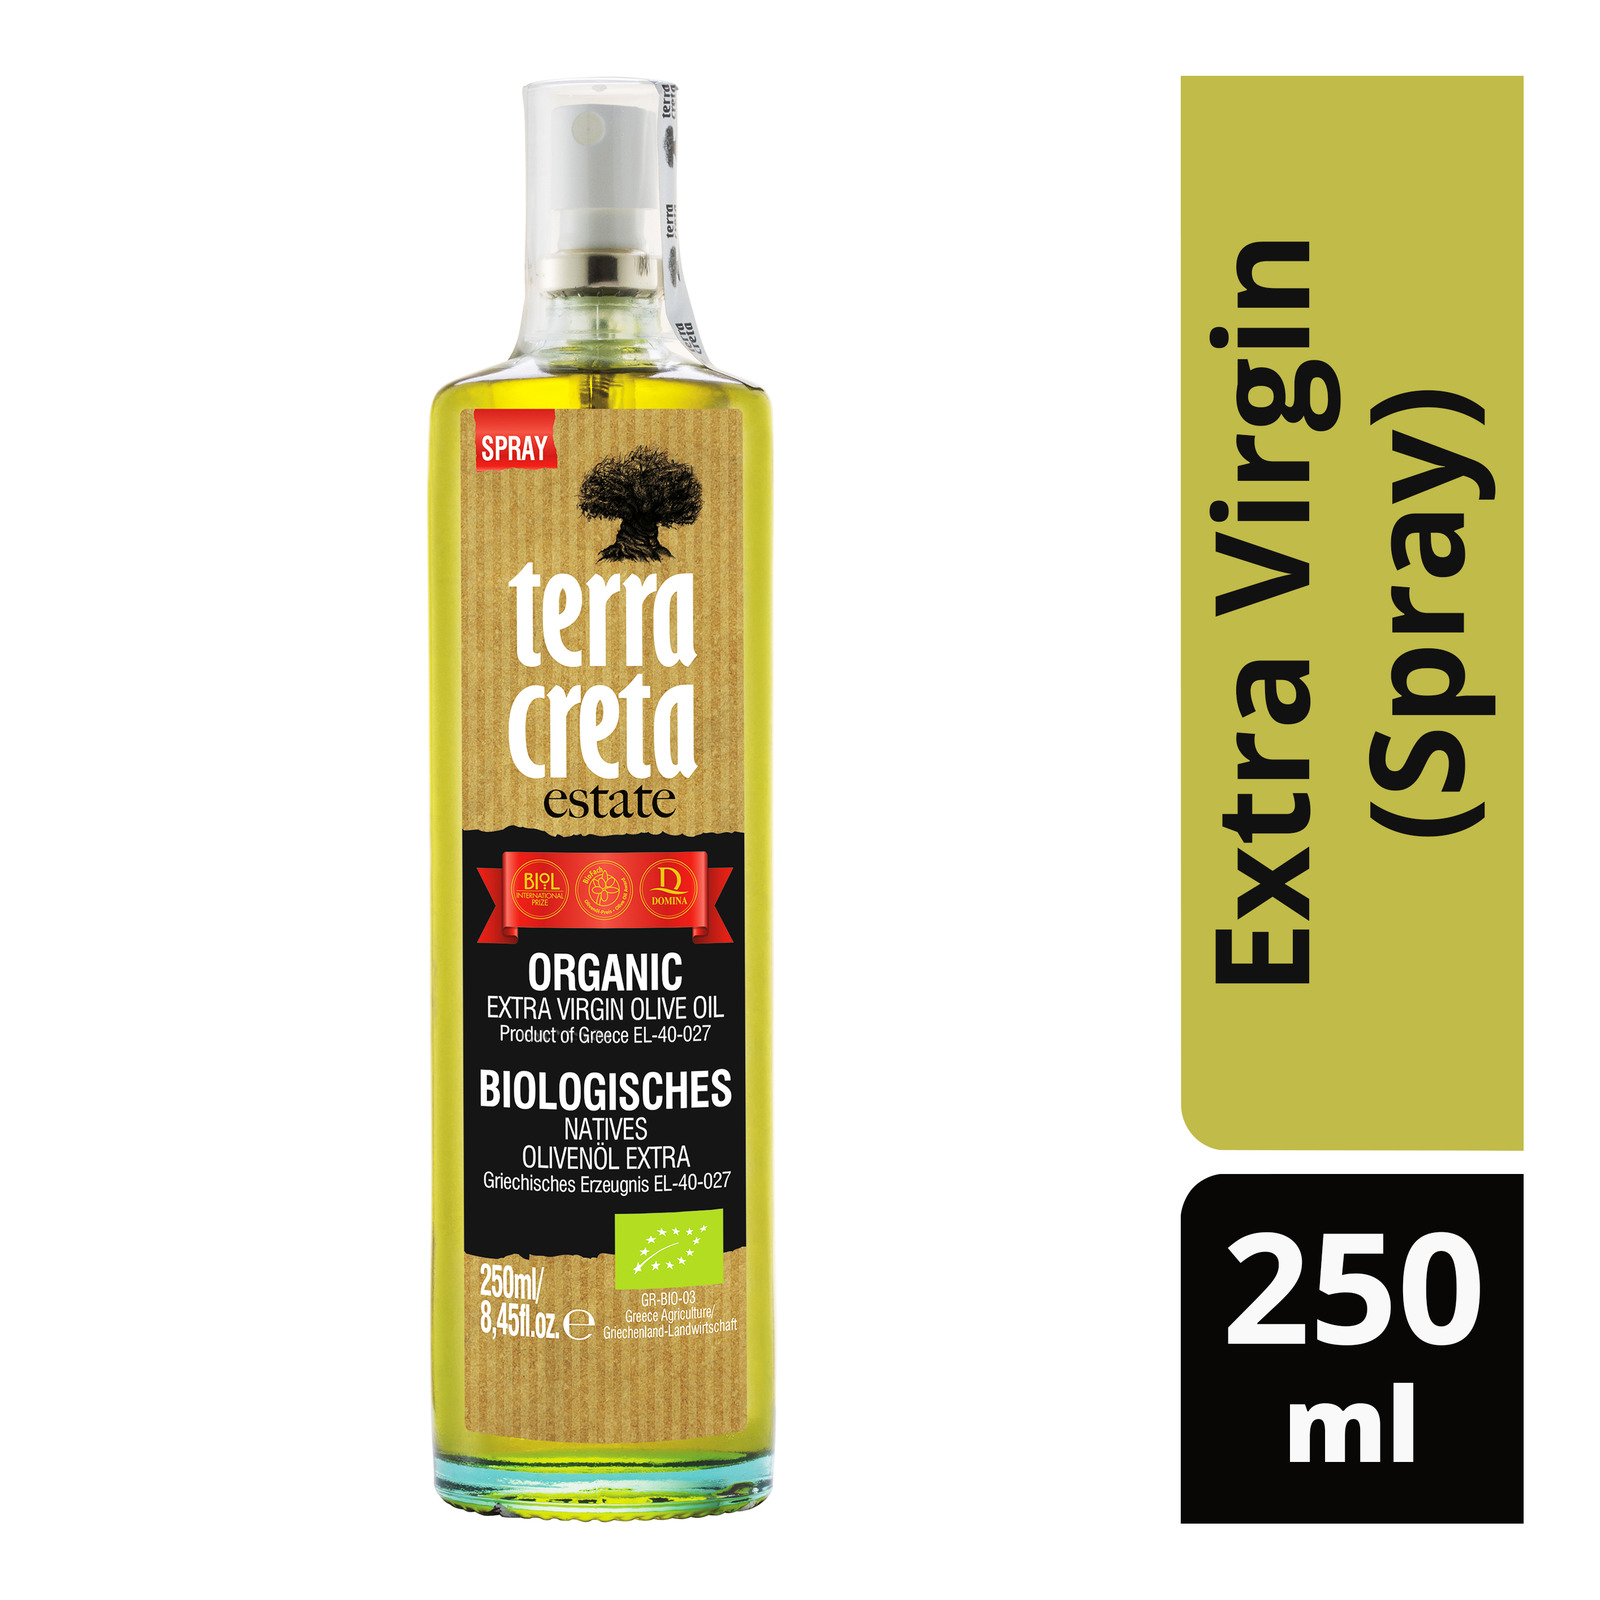 Terra Creta Estate Organic Olive Oil - Extra Virgin (Spray)